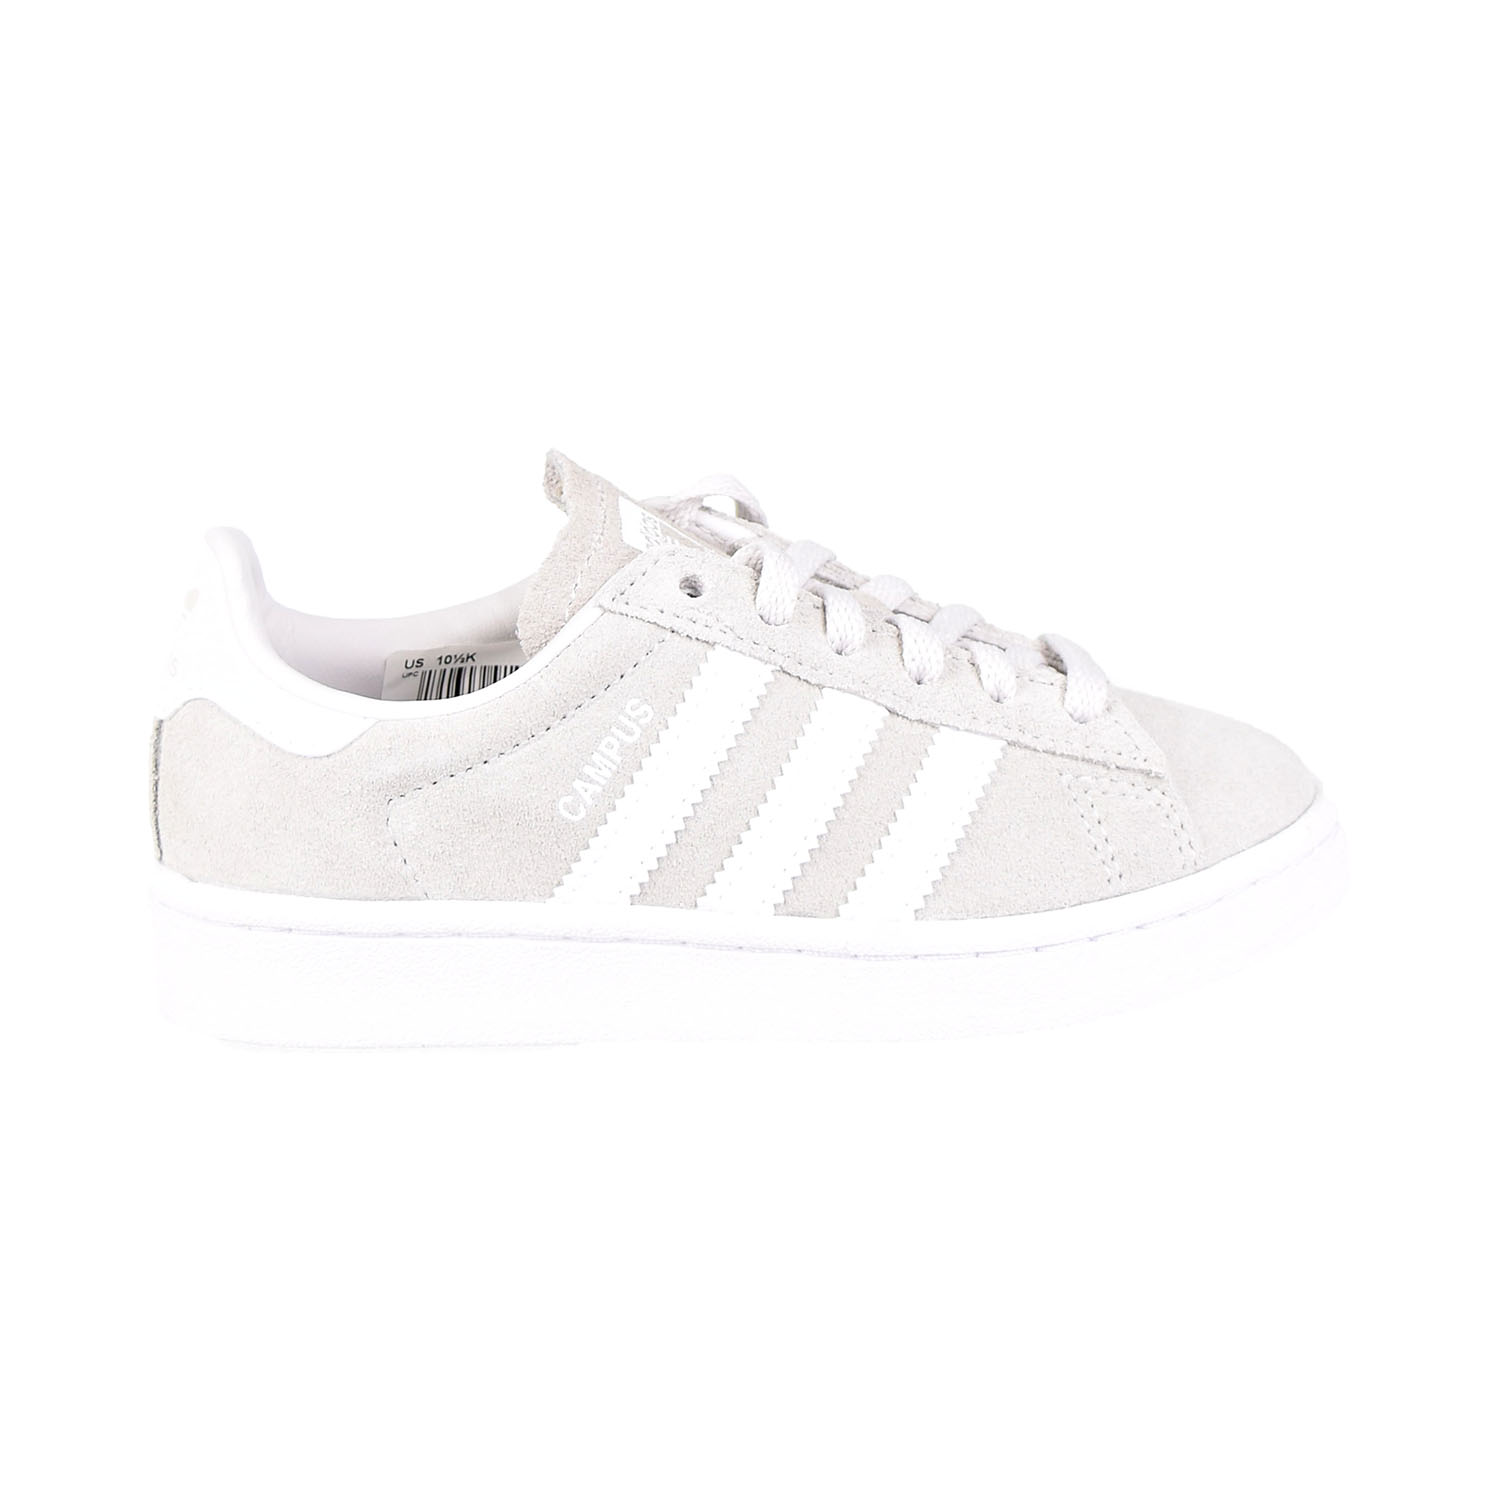 Adidas Campus Little Kids Shoes Grey-White BY2376 | eBay